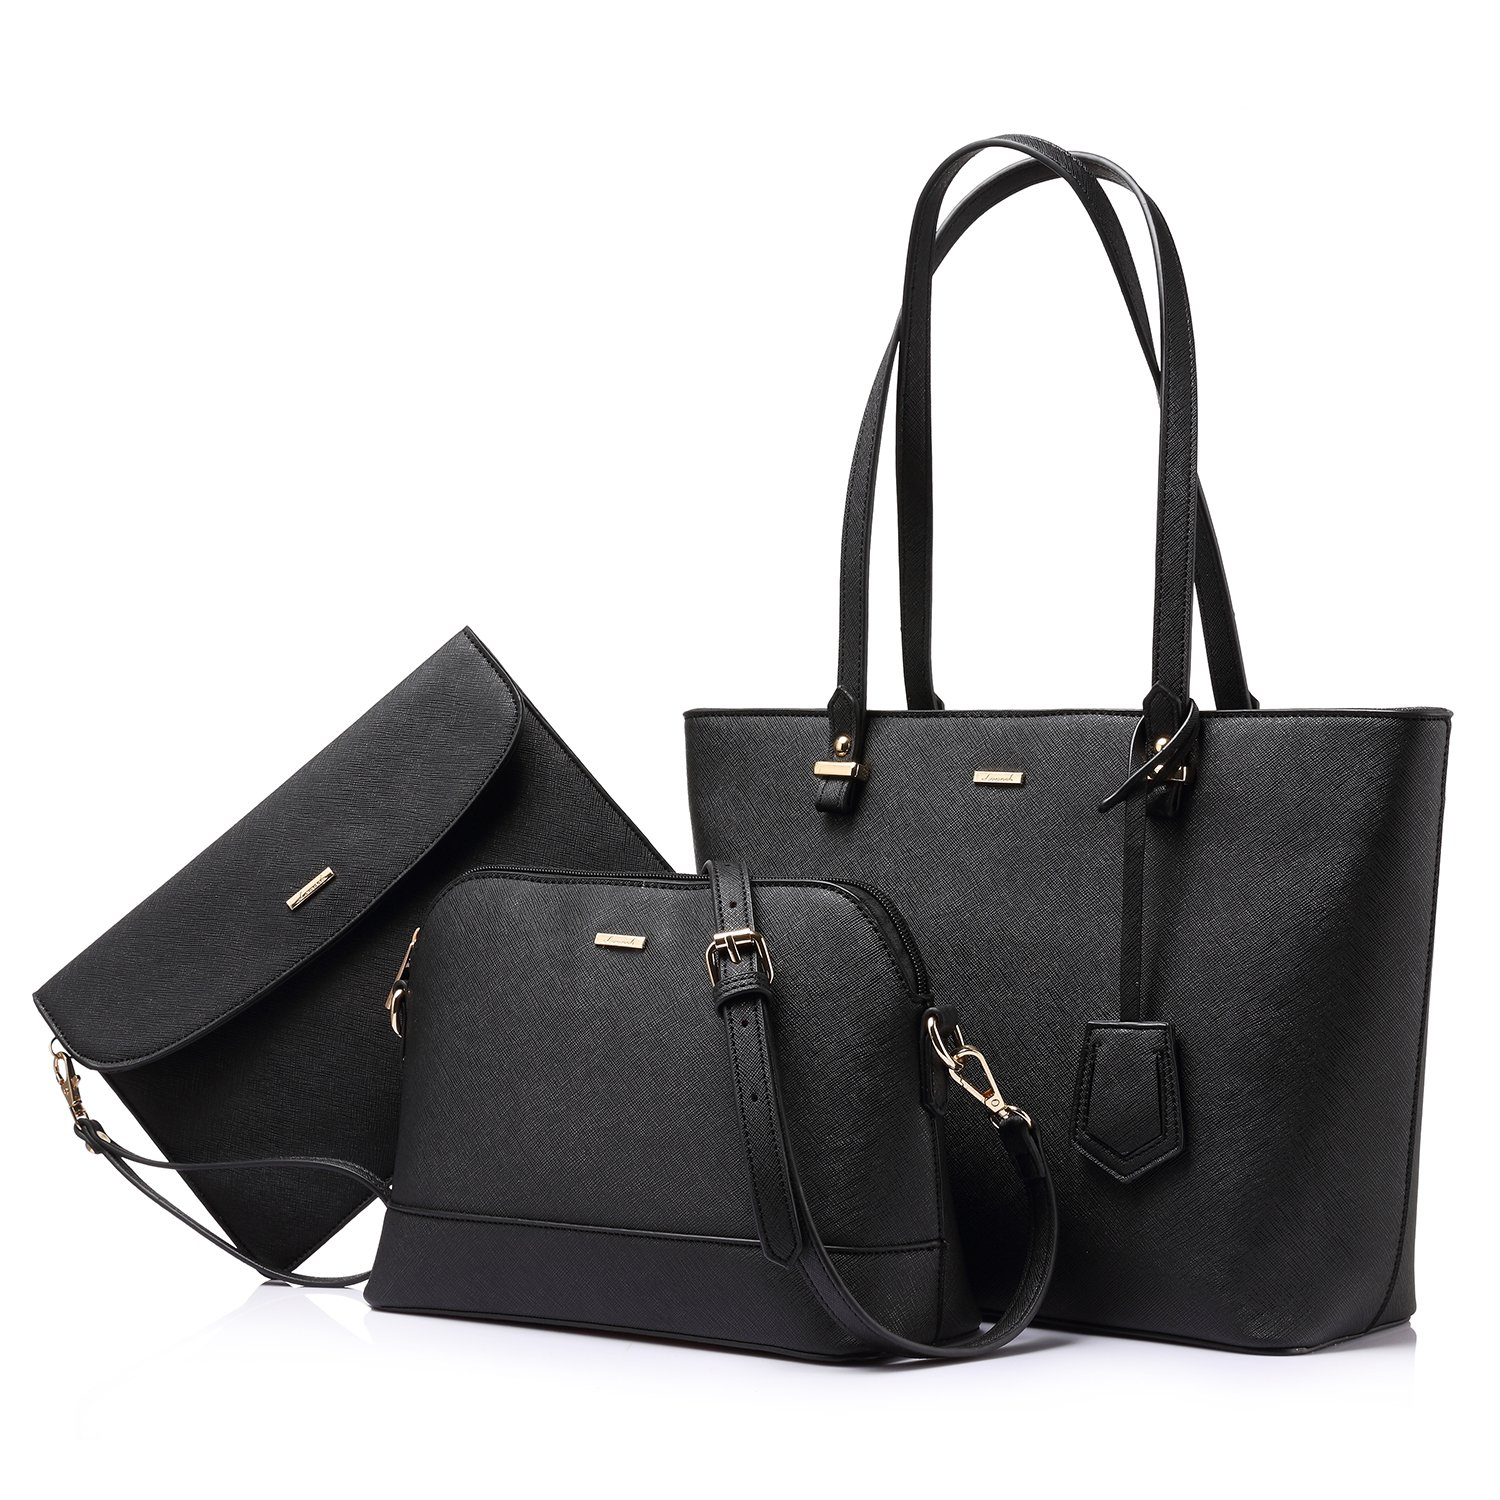 a26ead1a4a20 Amazon.com  Handbags for Women Shoulder Bags Tote Satchel Hobo 3pcs Purse  Set Black  Shoes